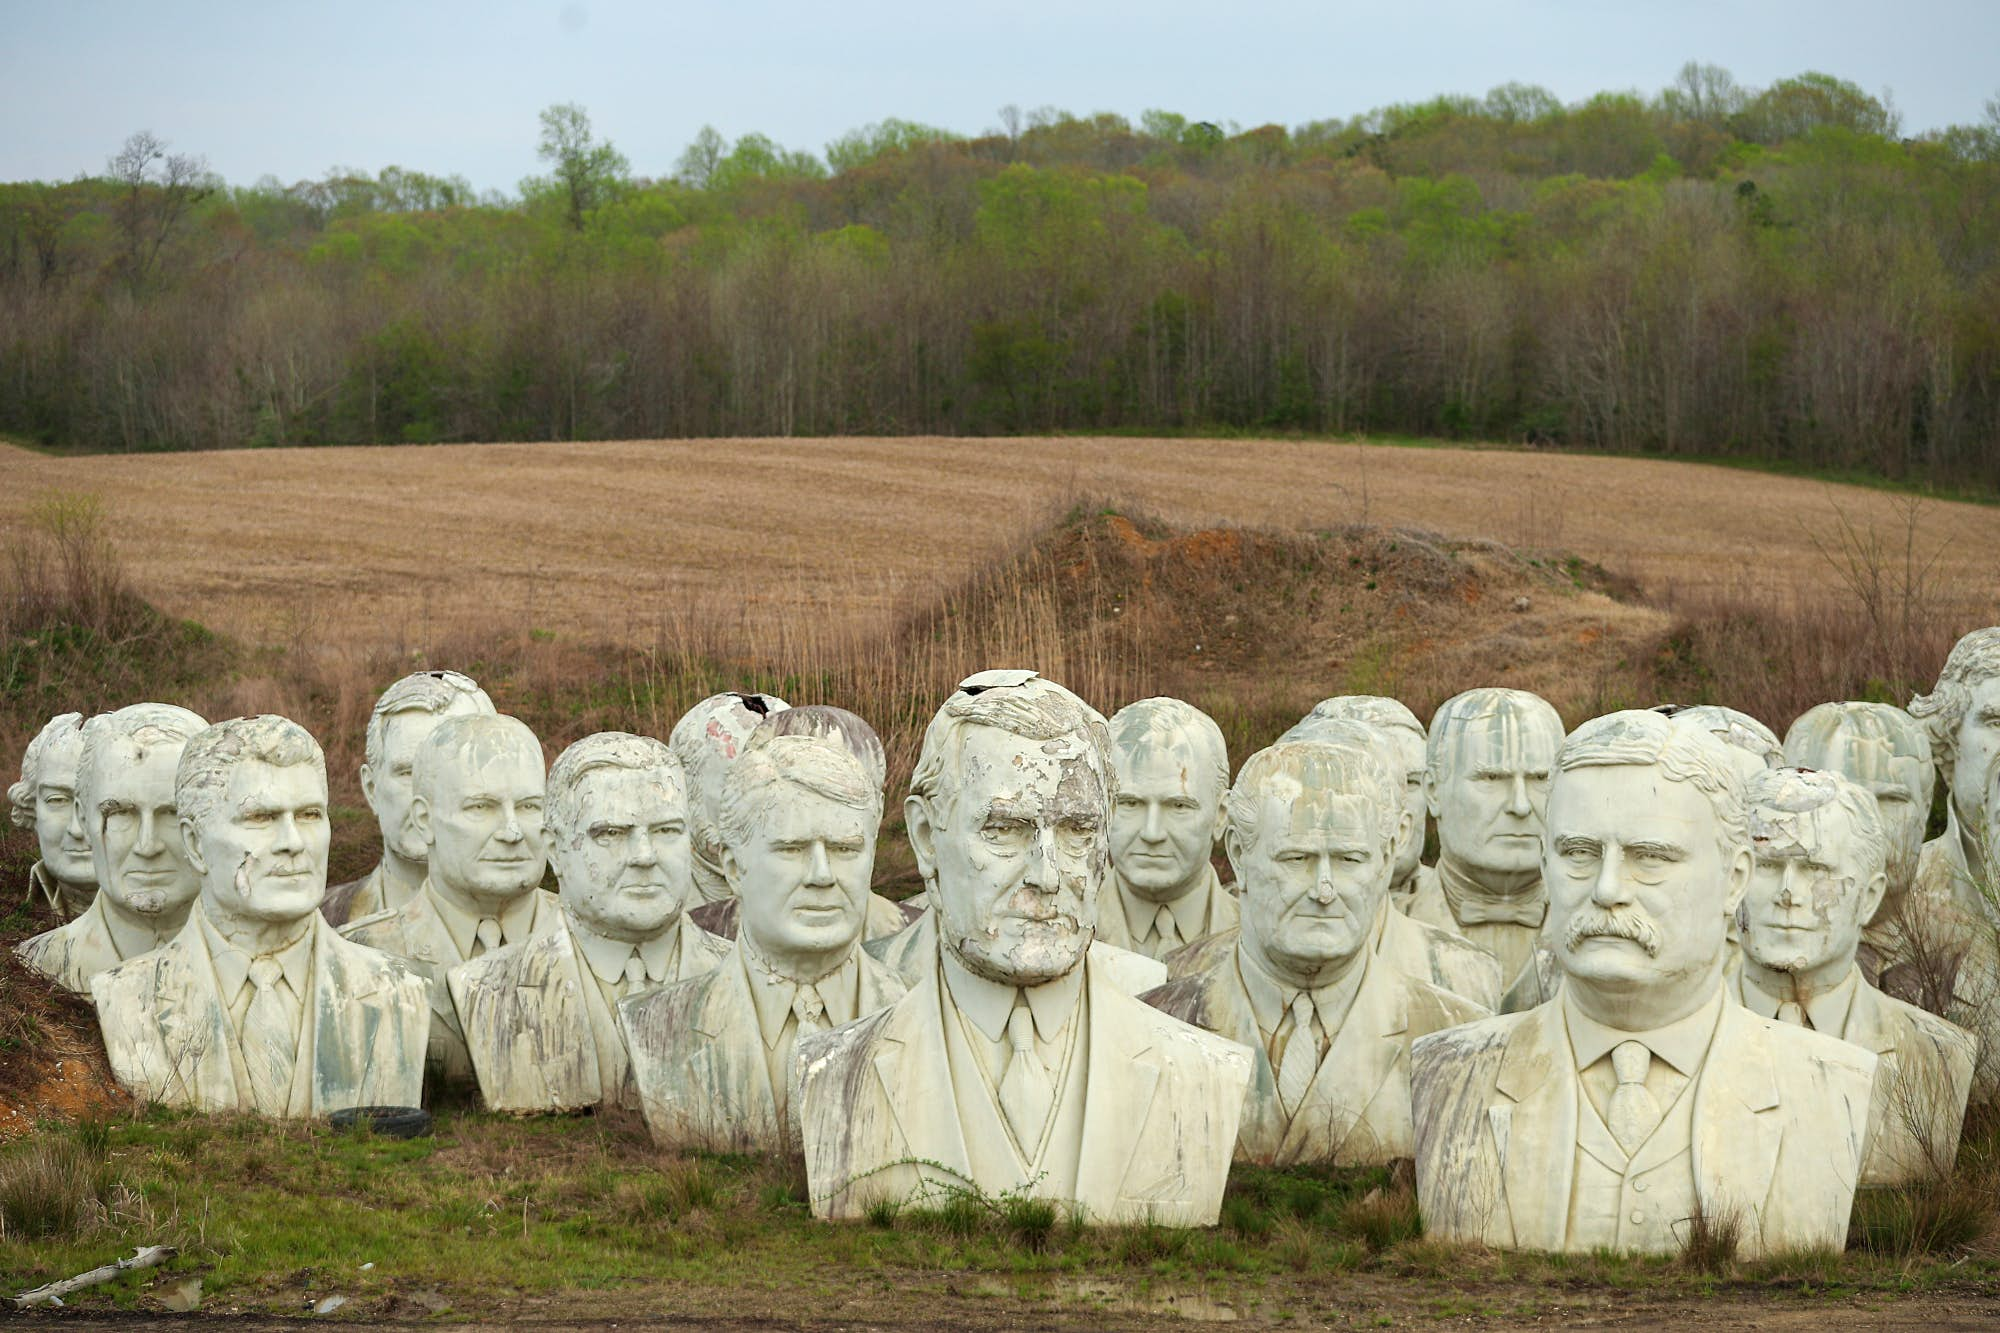 Twent foot busts of former US Presidents' heads at Croaker. Teddy Roosevelt is visible centre-right.